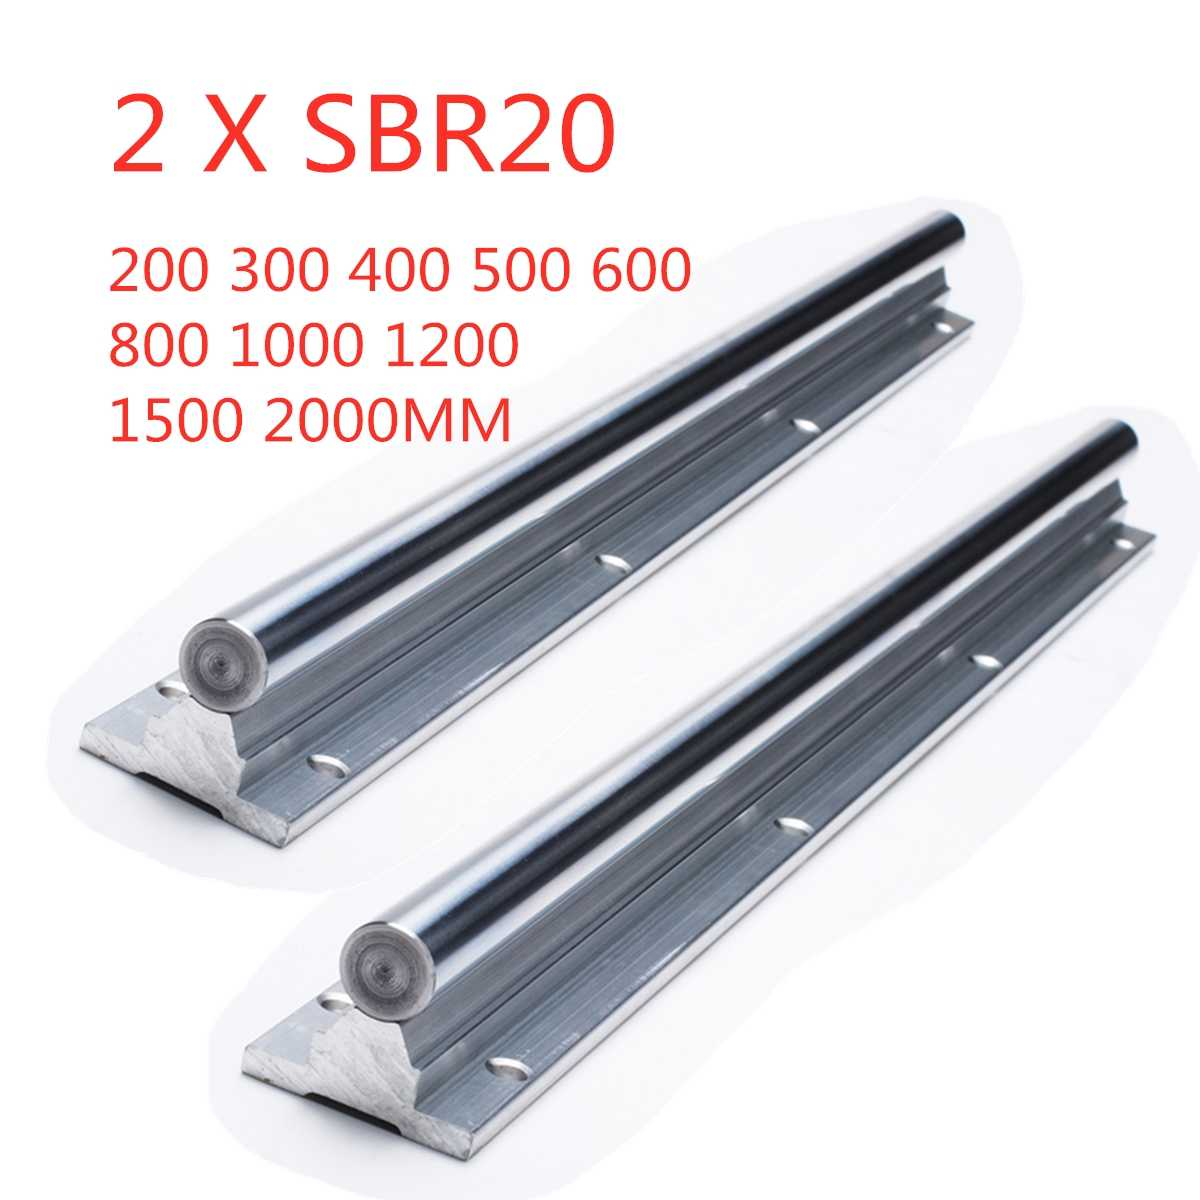 2pcs SBR20 200-2000mm Linear Guide Rail SBR20 Linear Bearing Blocks for CNC parts 20mm Linear Rail